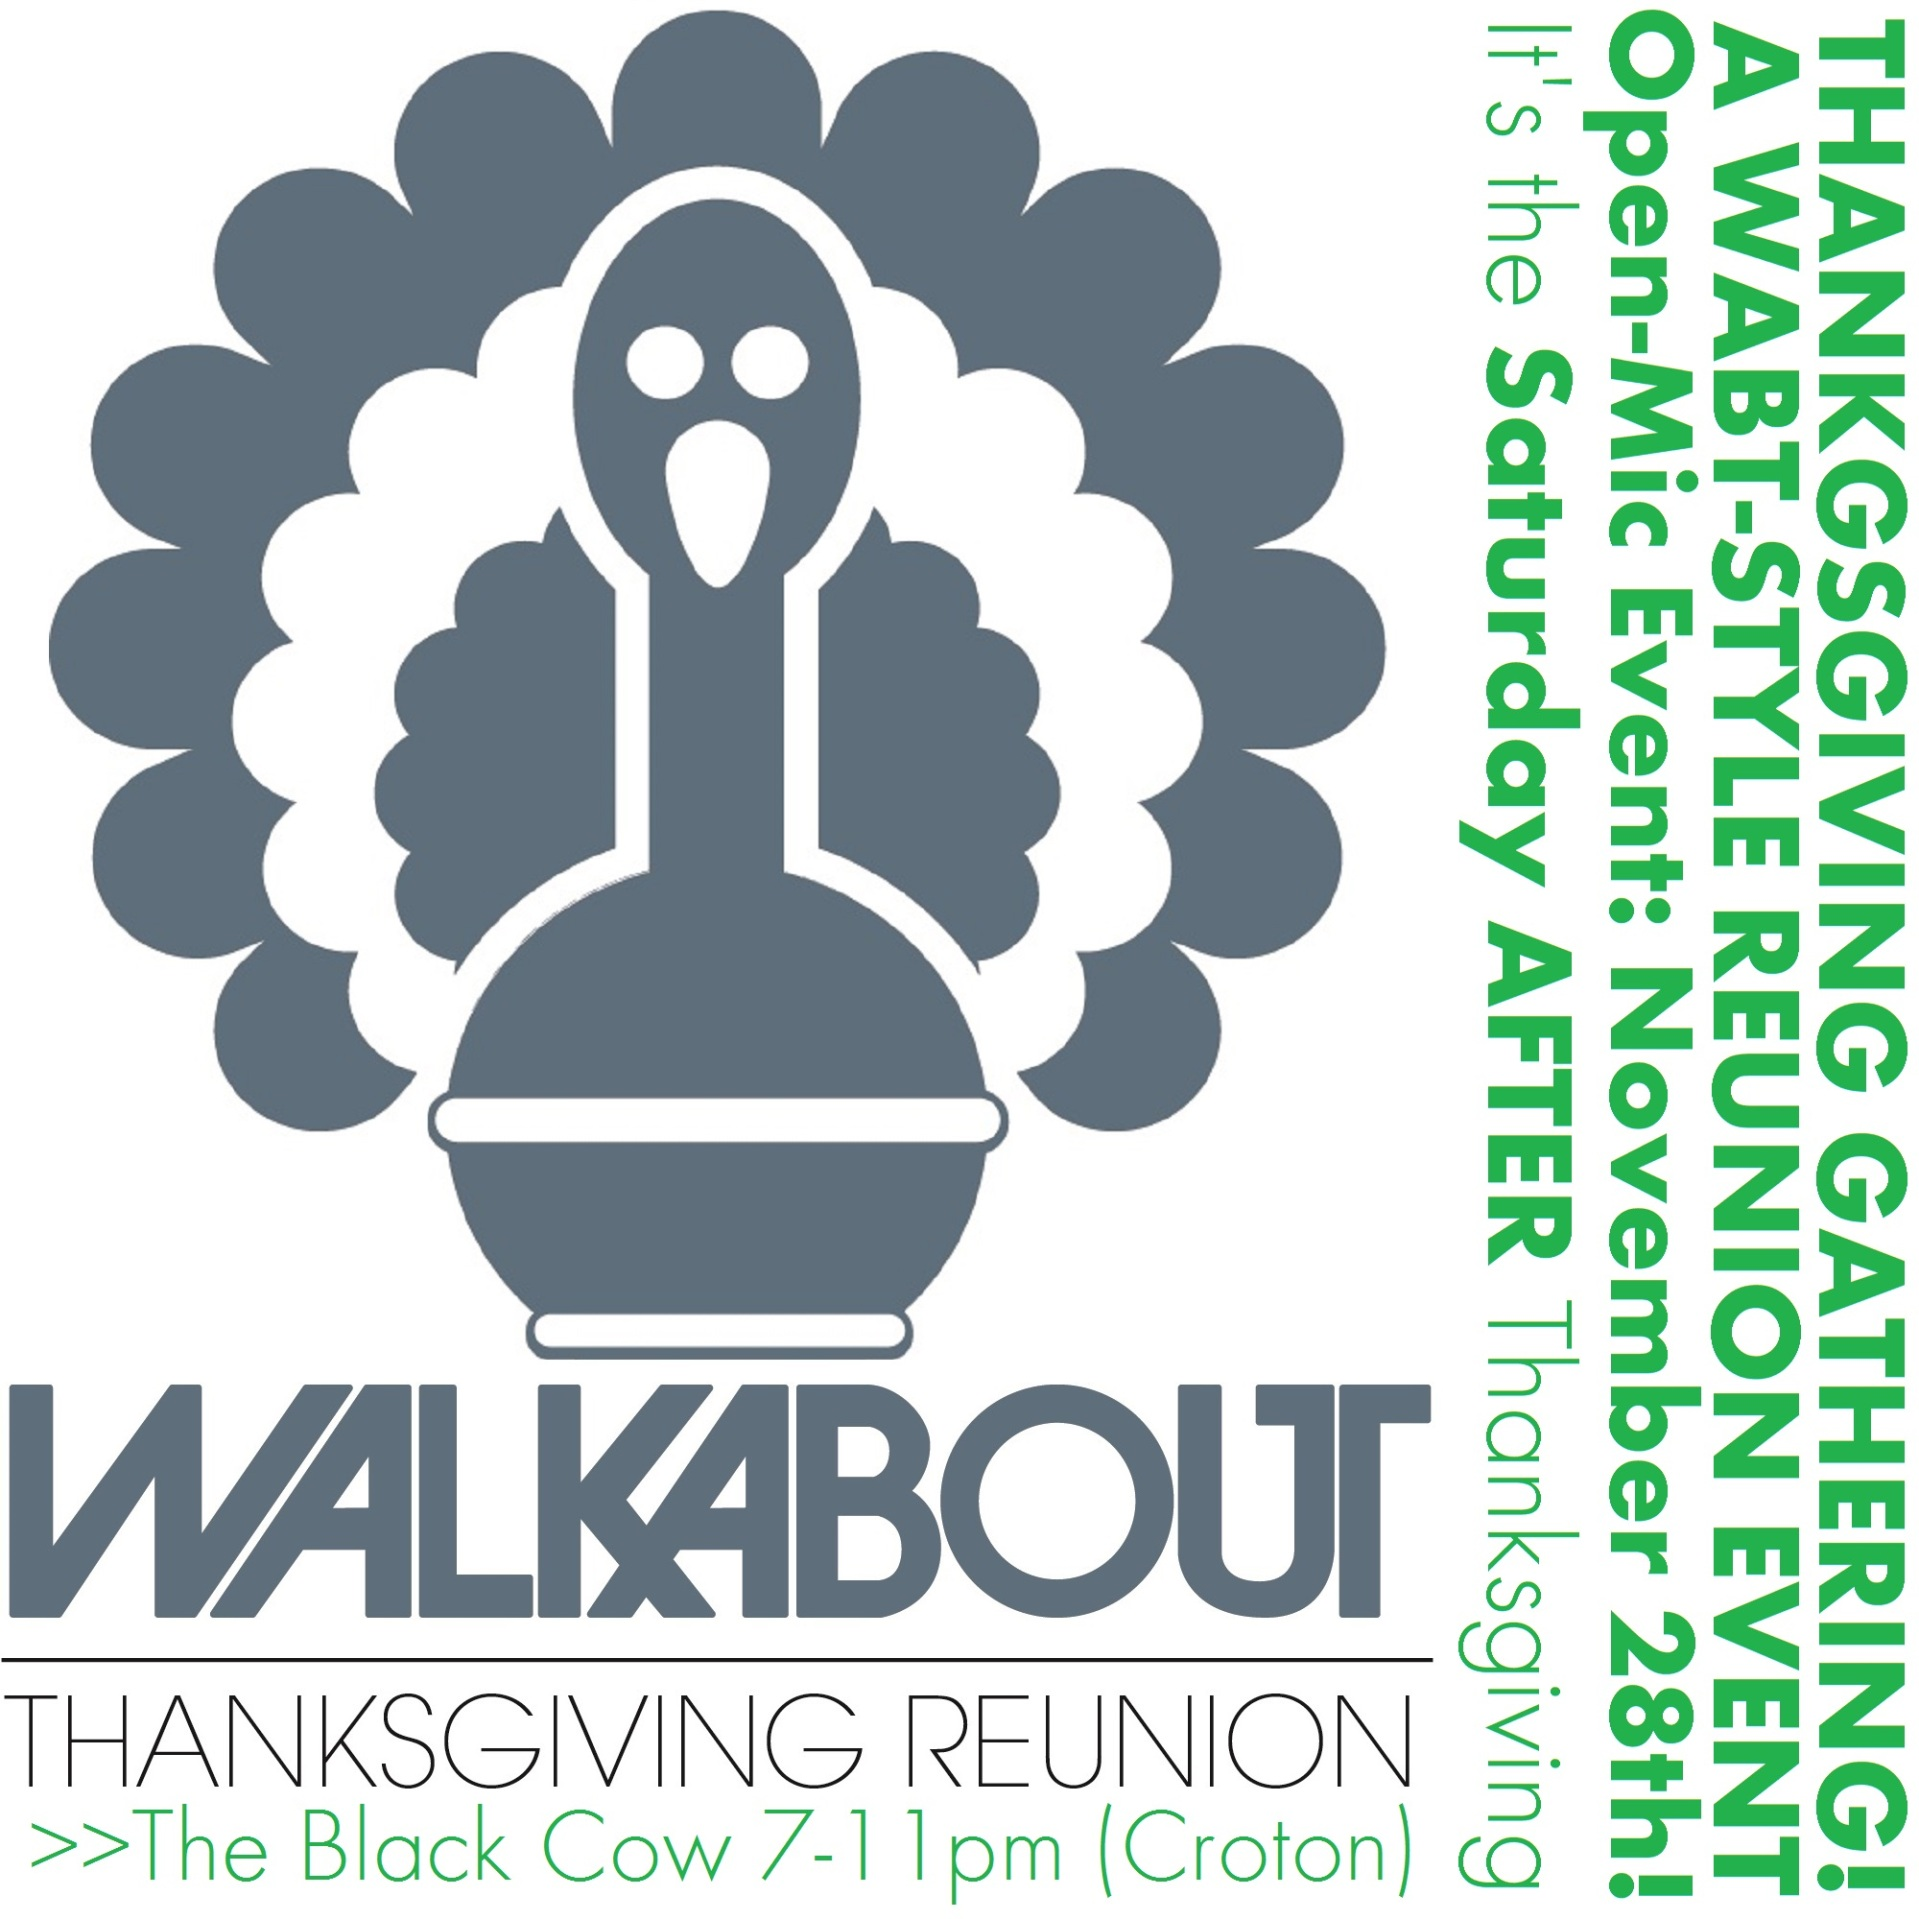 WABT Thanksgiving Gathering & Reunion 2015 - Saturday Nov 28th